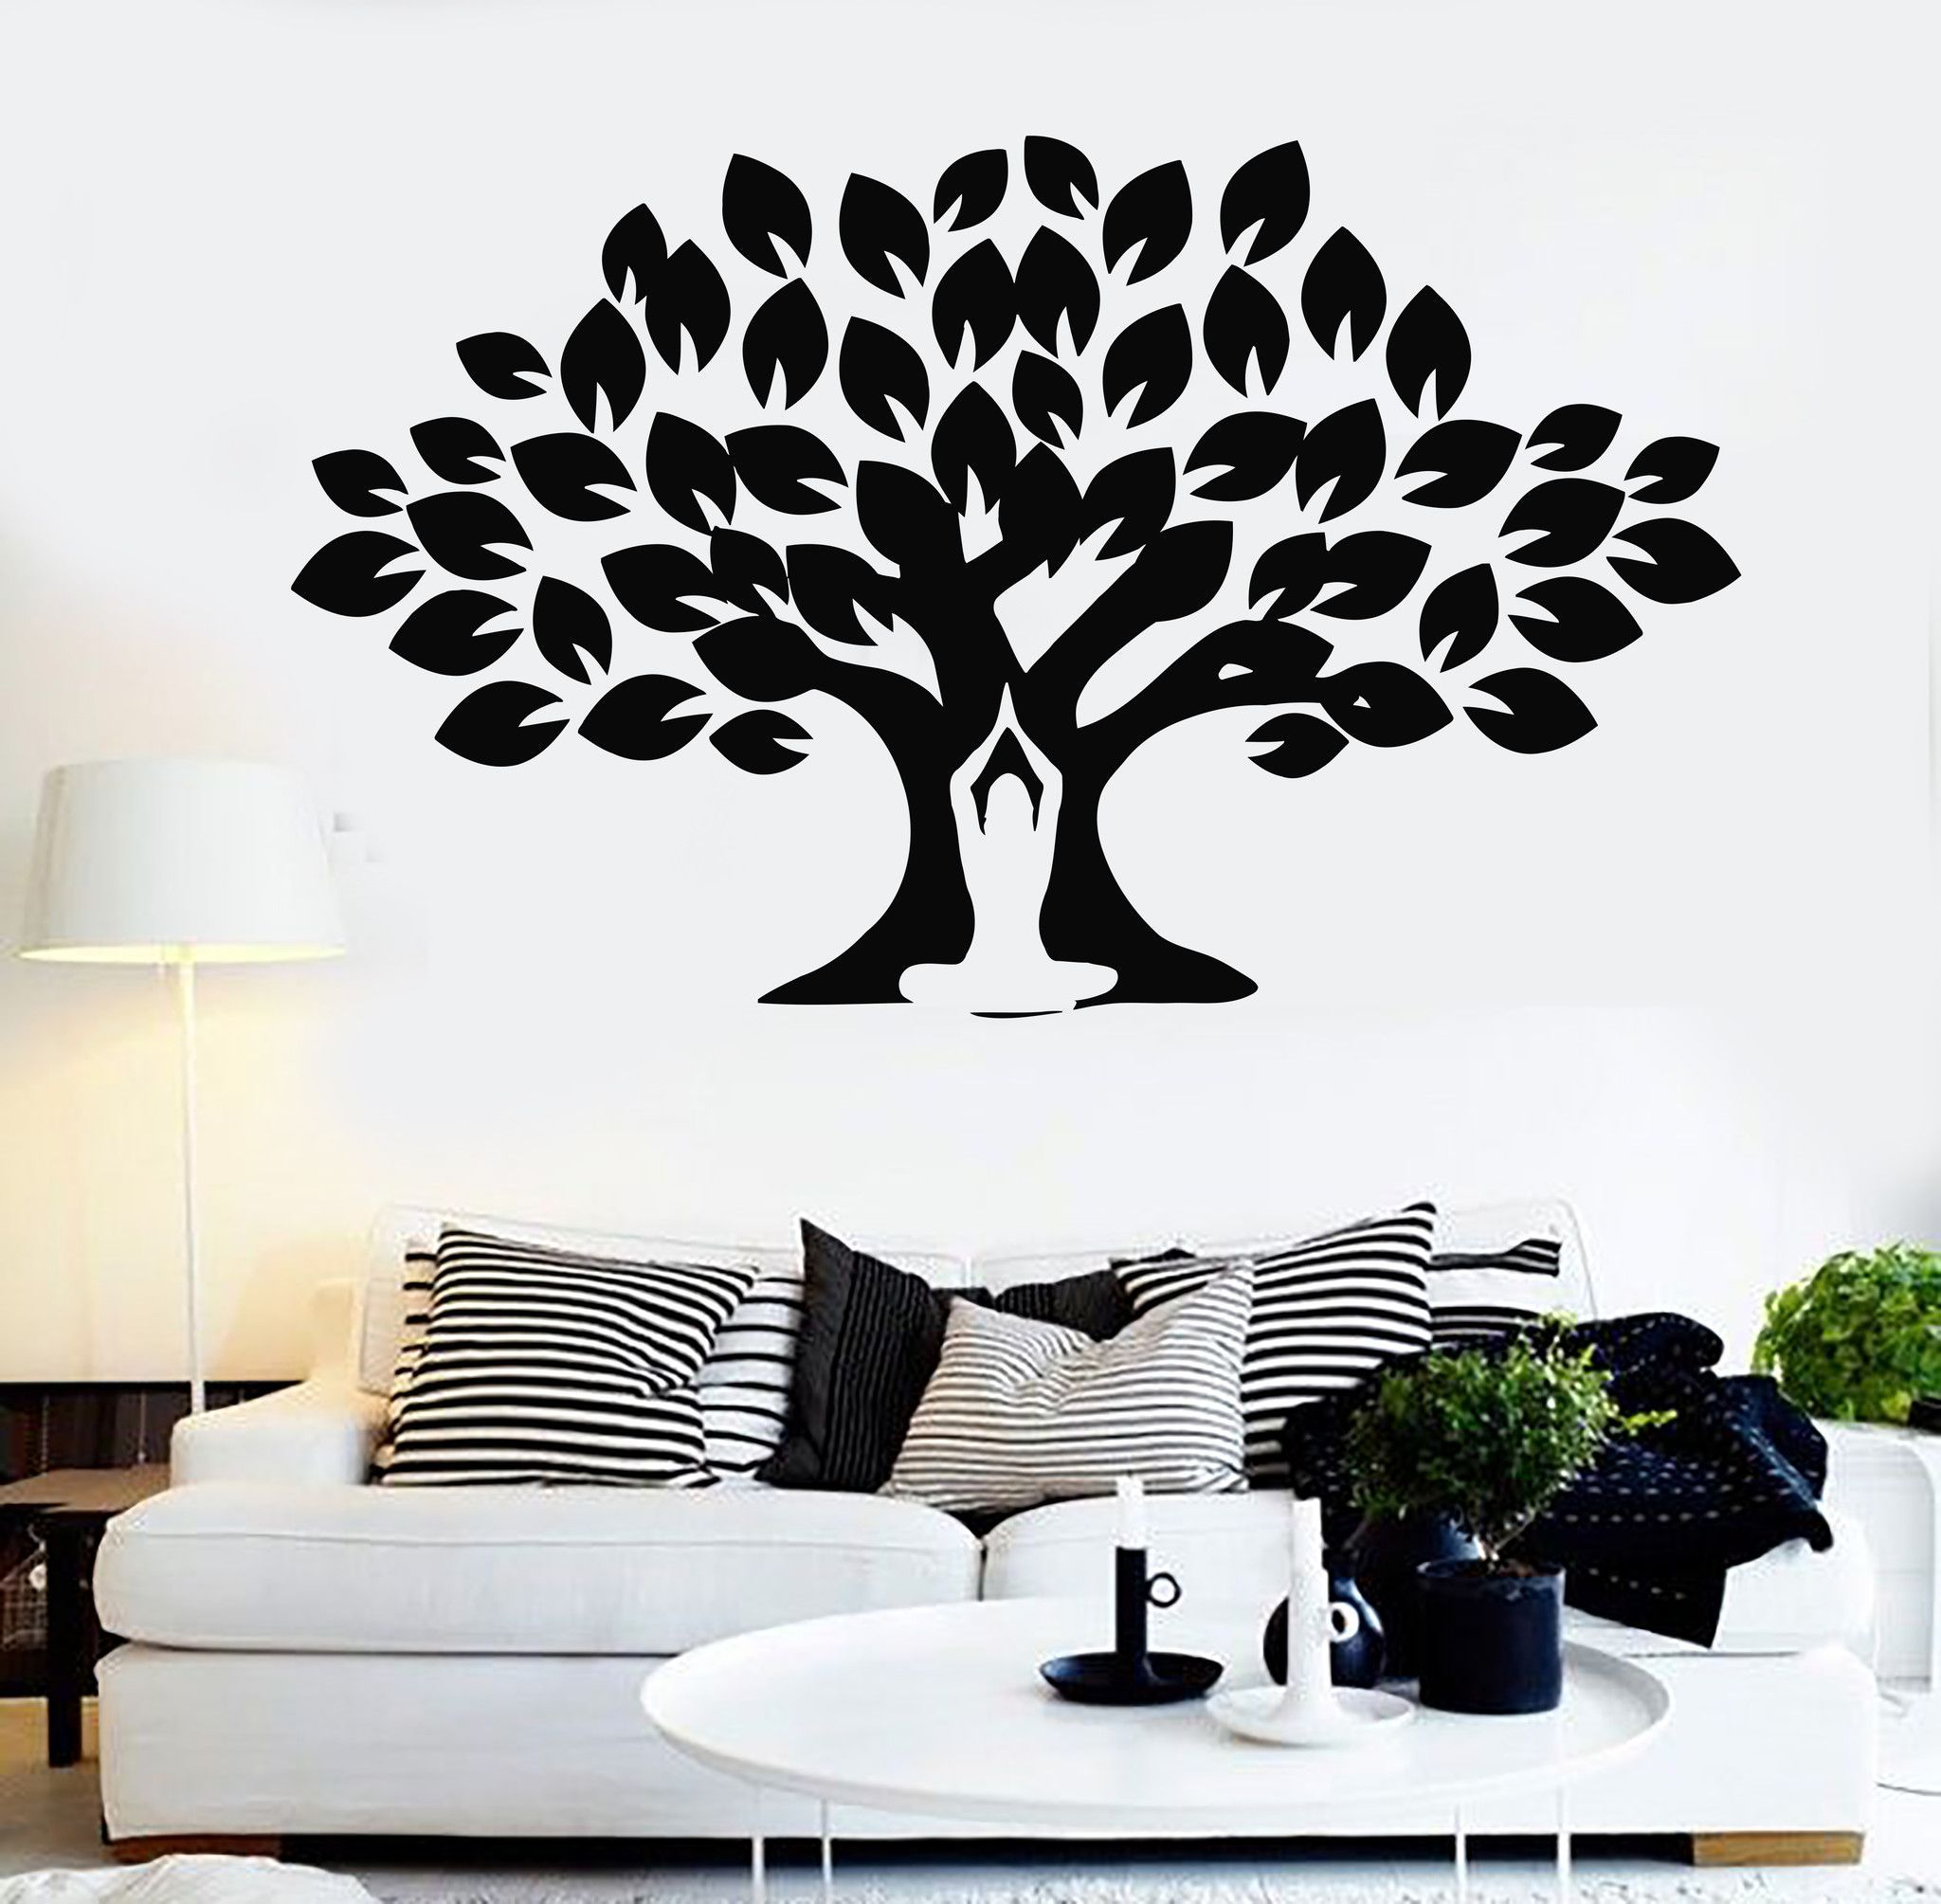 Vinyl Wall Decal Yoga Meditation Center Tree Buddhism Stickers Mural Unique Gift 094ig Wall Painting Decor Diy Wall Painting Vinyl Wall Decals